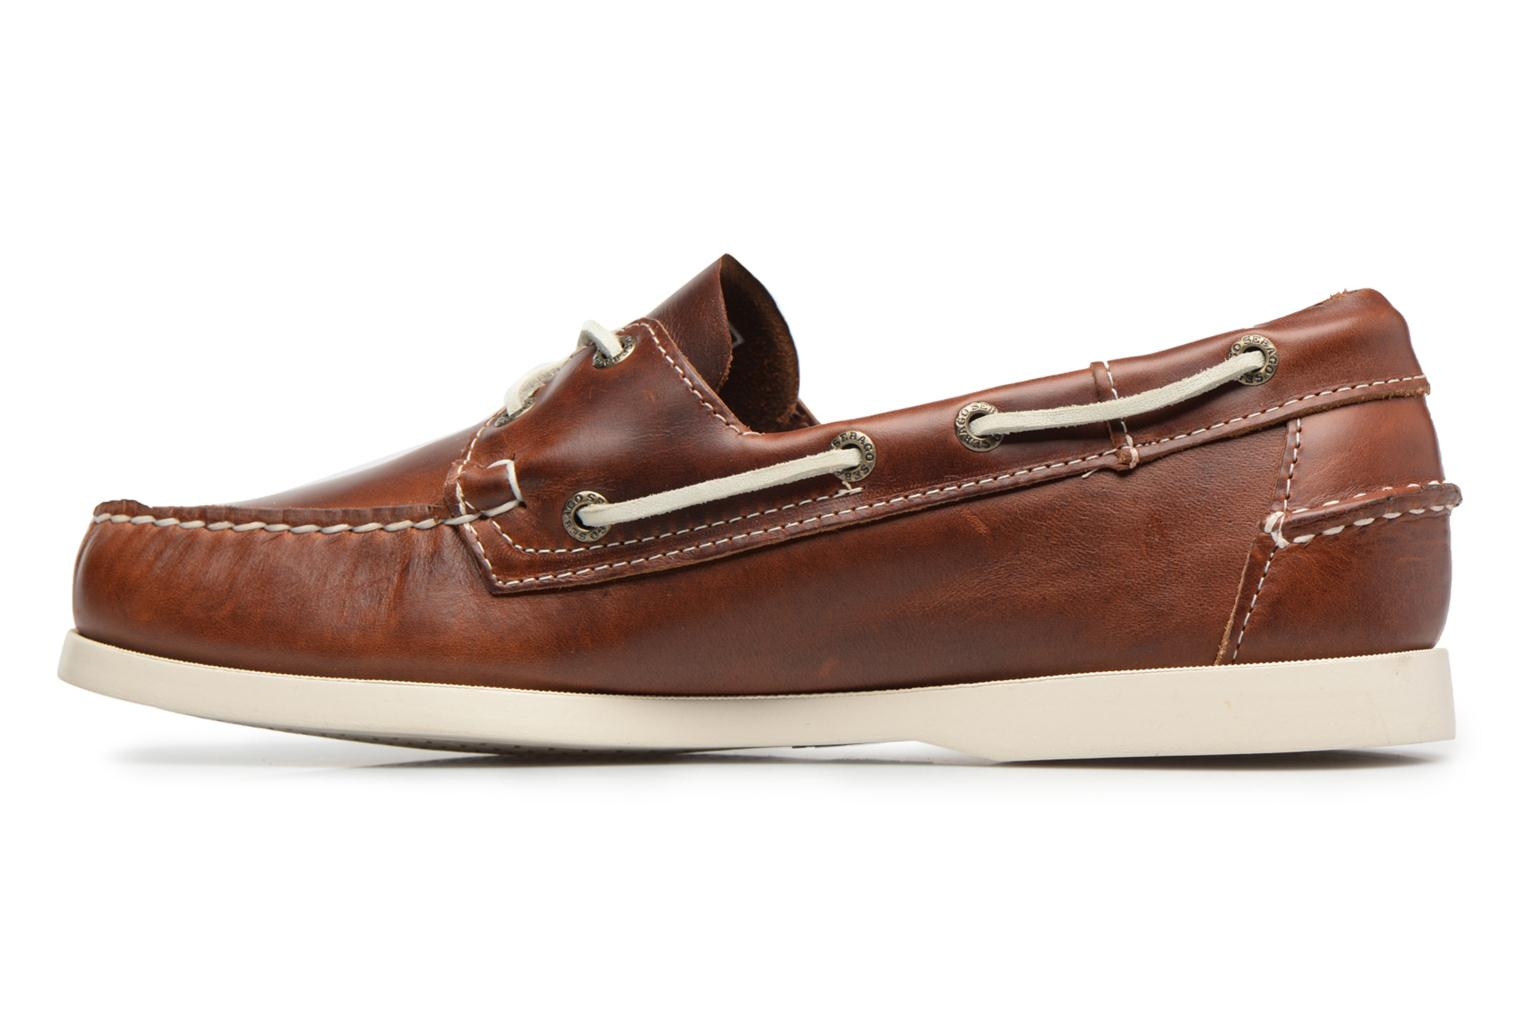 Lace-up shoes Sebago Docksides M Brown front view